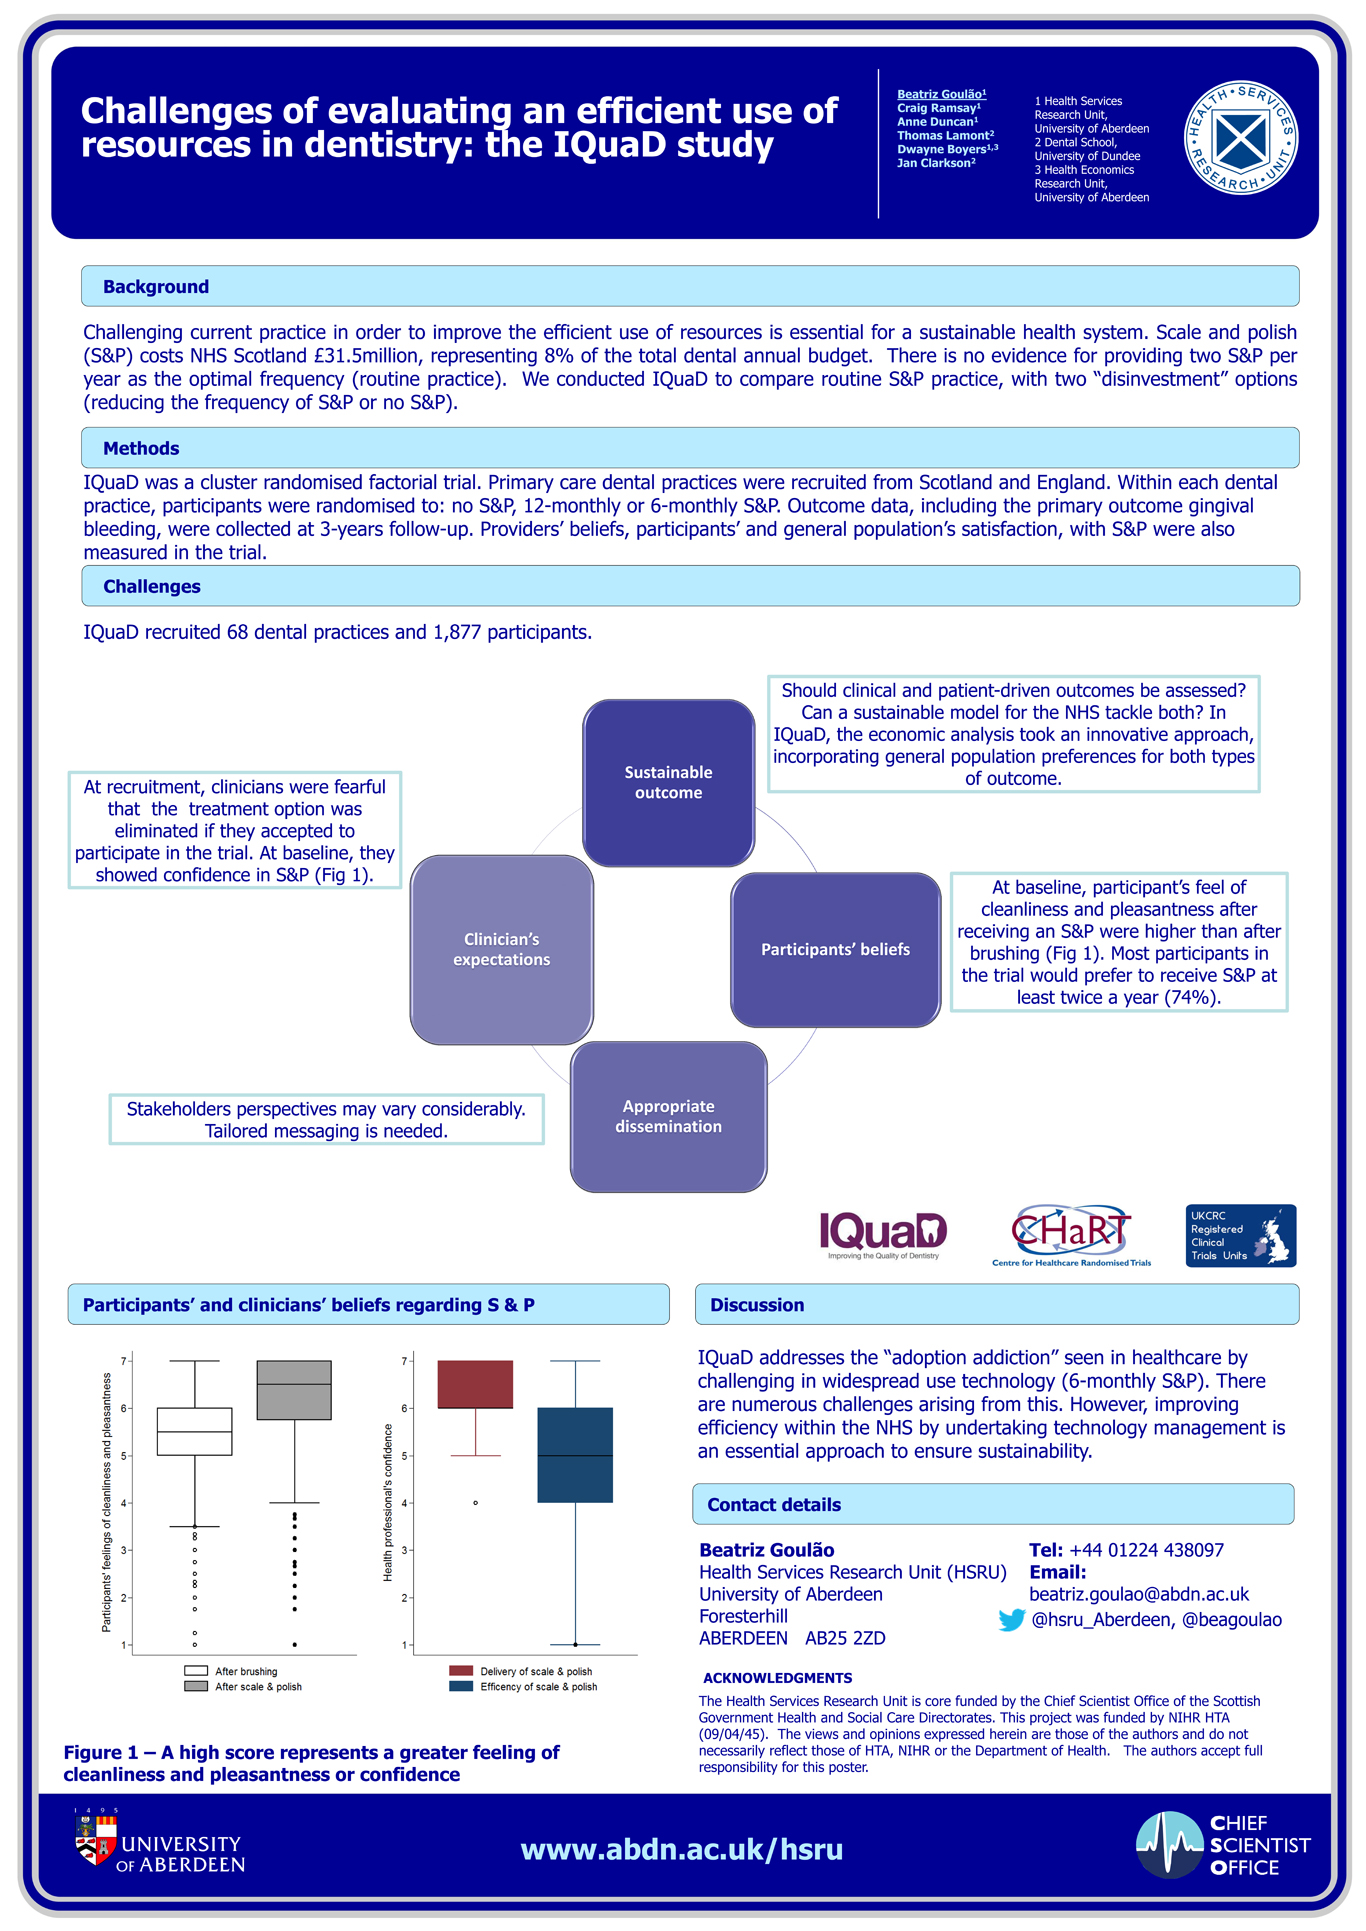 B Goulão - Challenges of evaluating an efficient use of resources in dentistry: the IQuaD study.